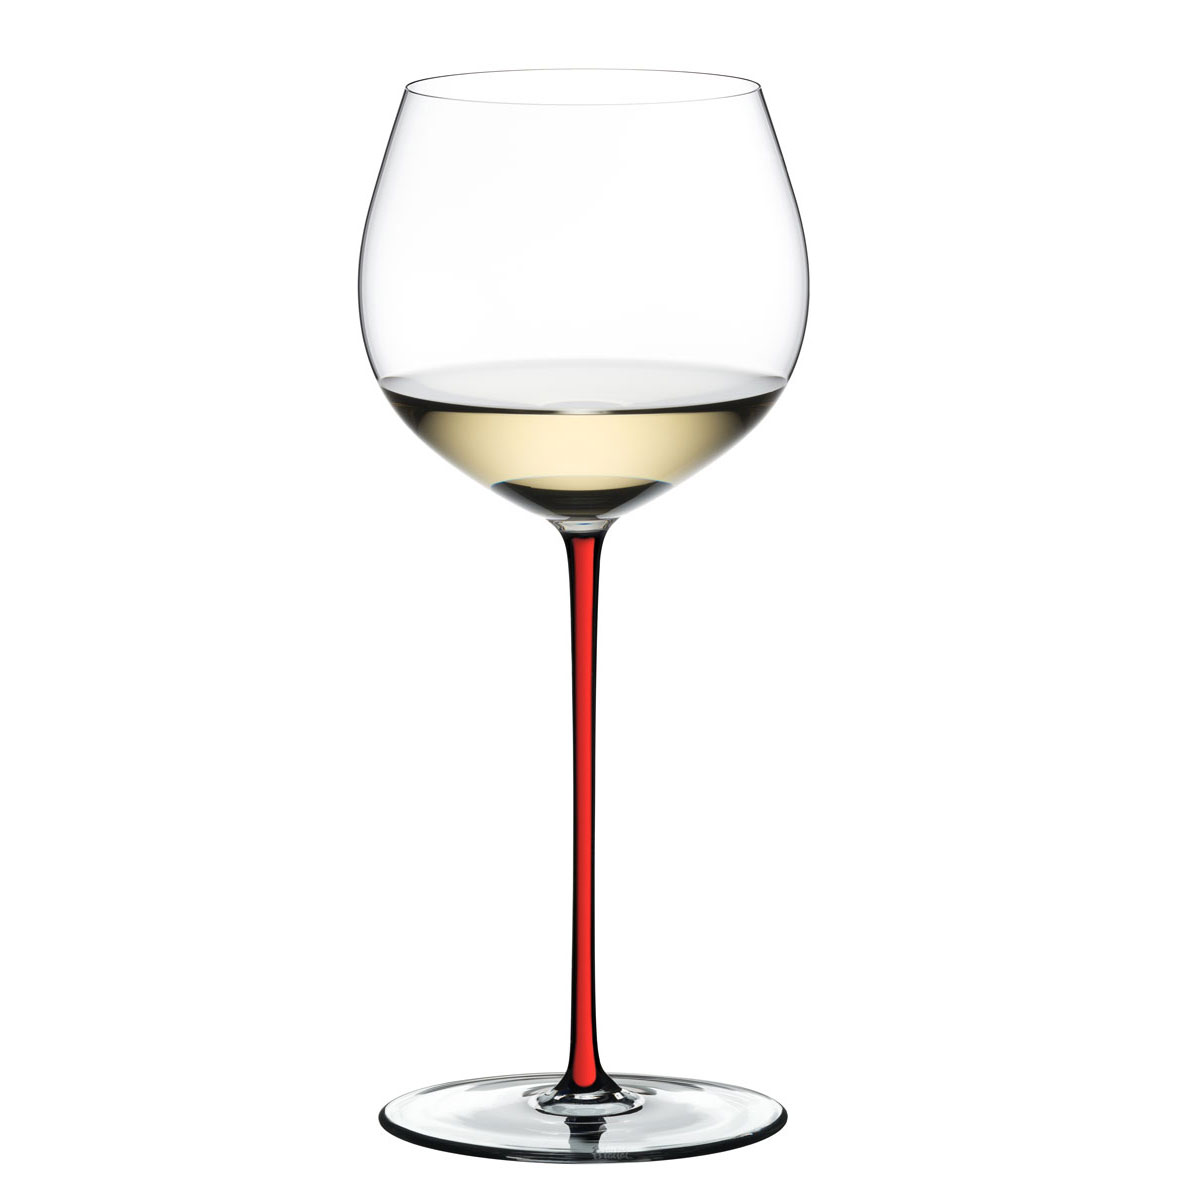 Riedel Fatto A Mano, Oaked Chardonnay Crystal Wine Glass, Red